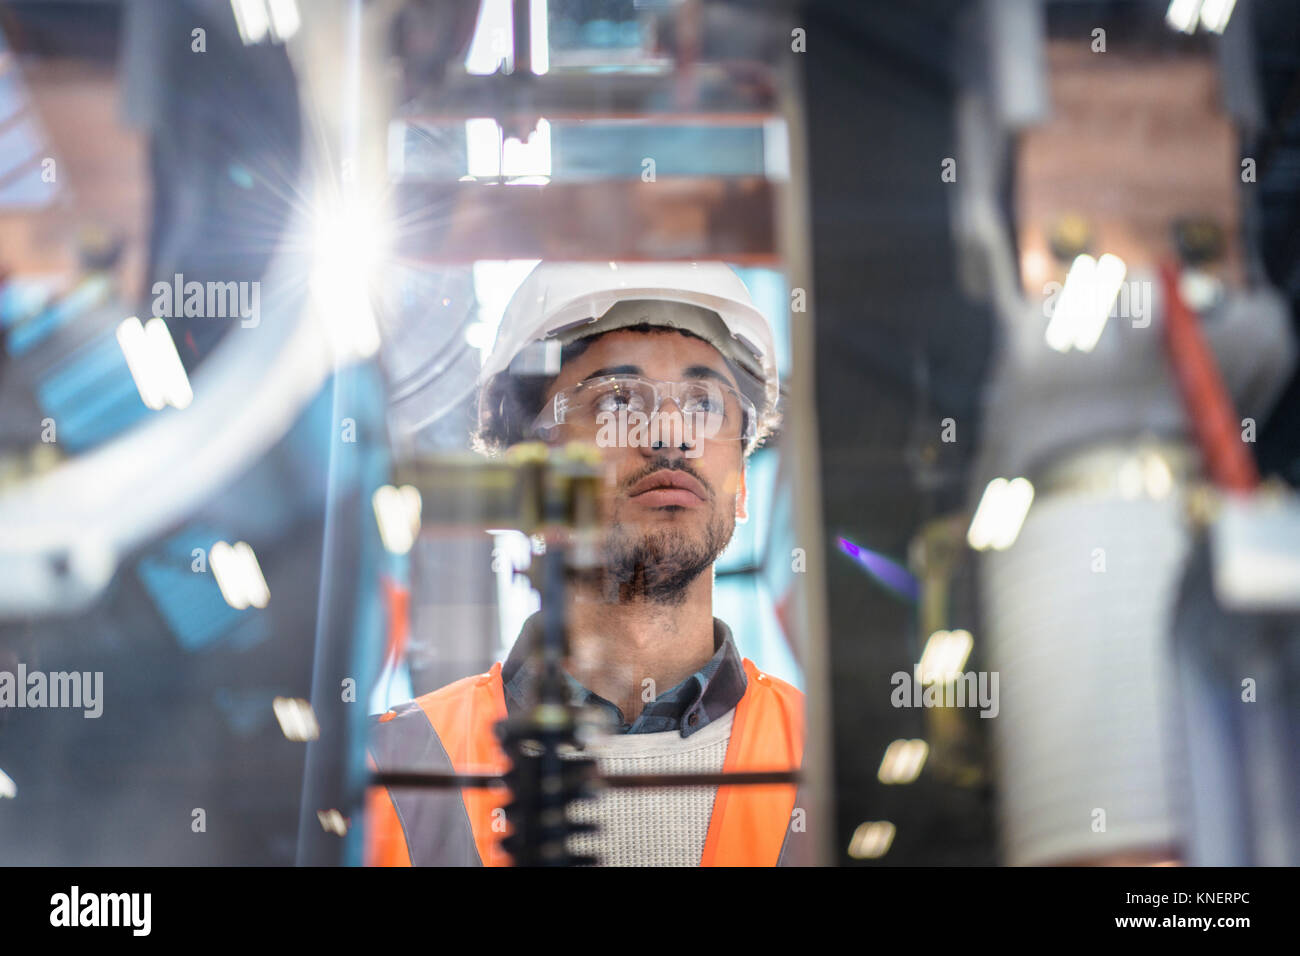 Portrait of apprentice in workshop of railway engineering facility - Stock Image